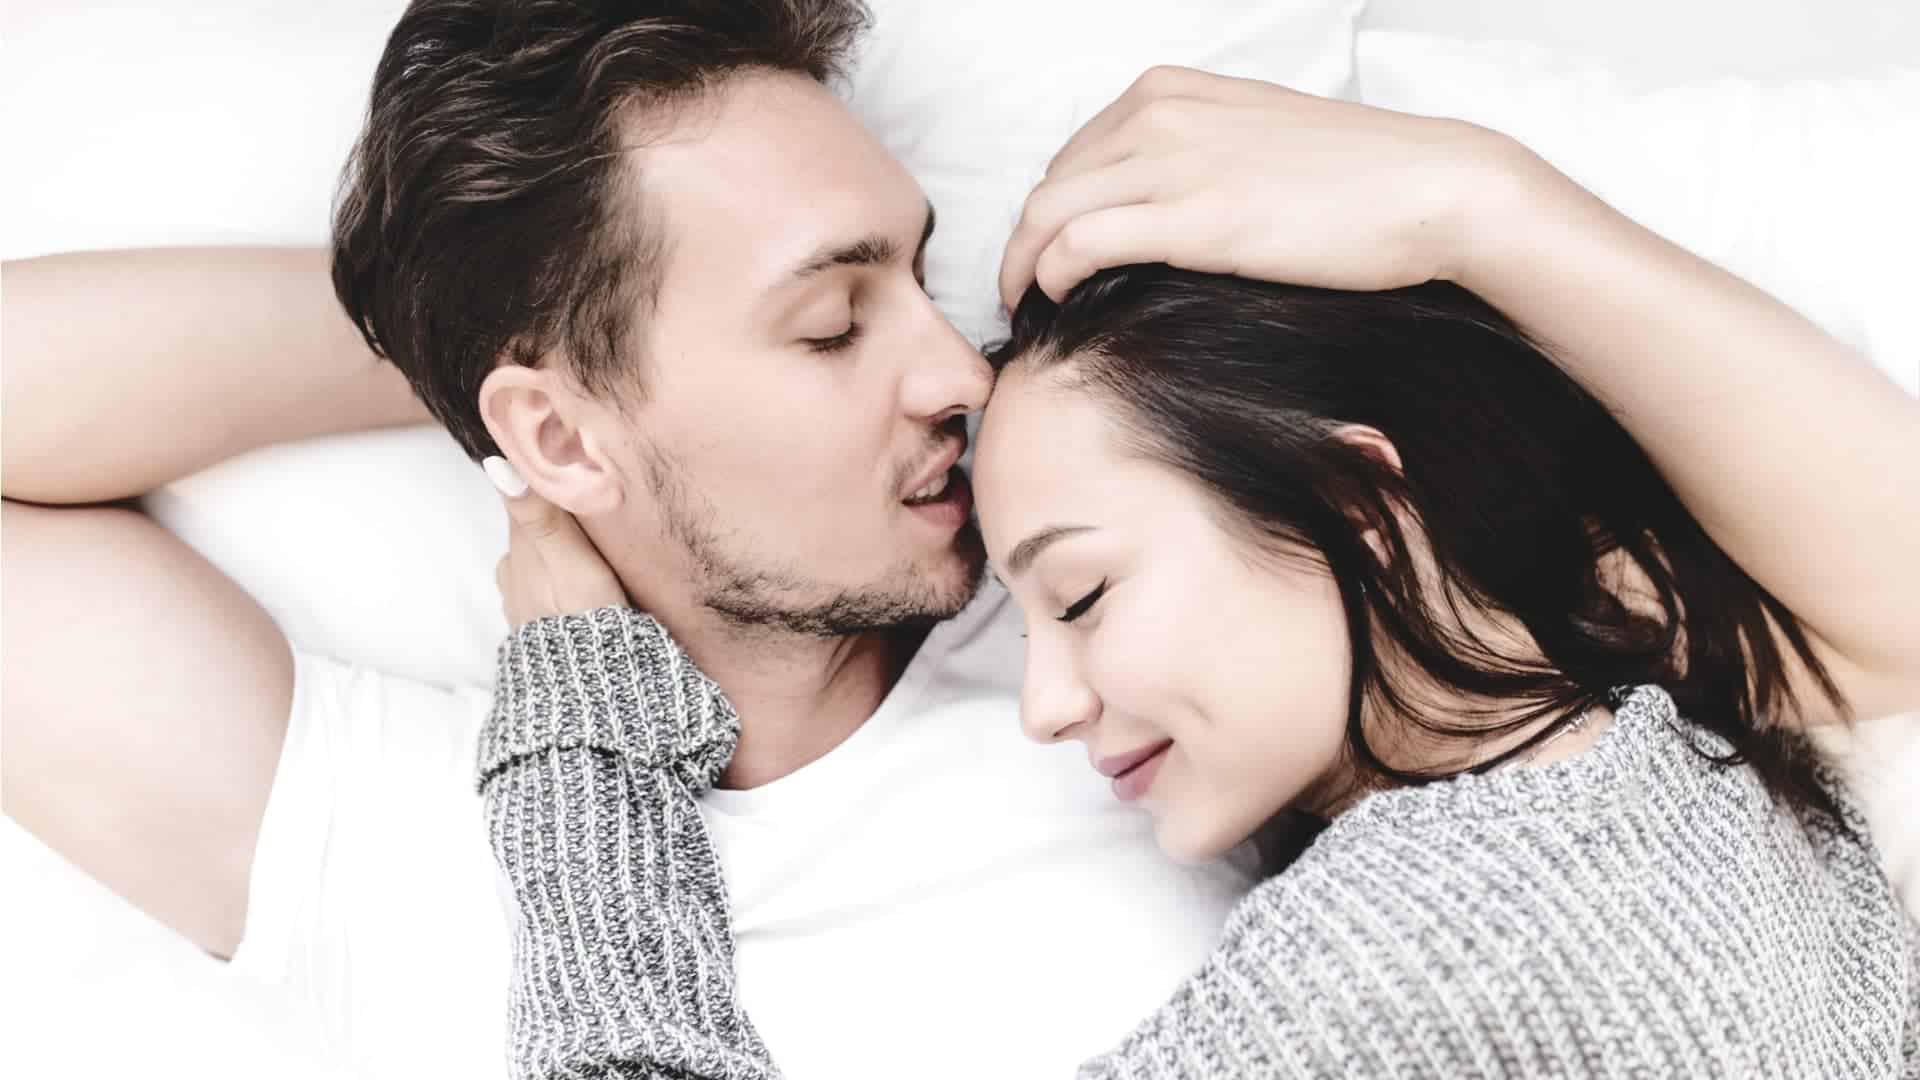 Use Non-Sexual Touching to Build Intimacy - VisiHow